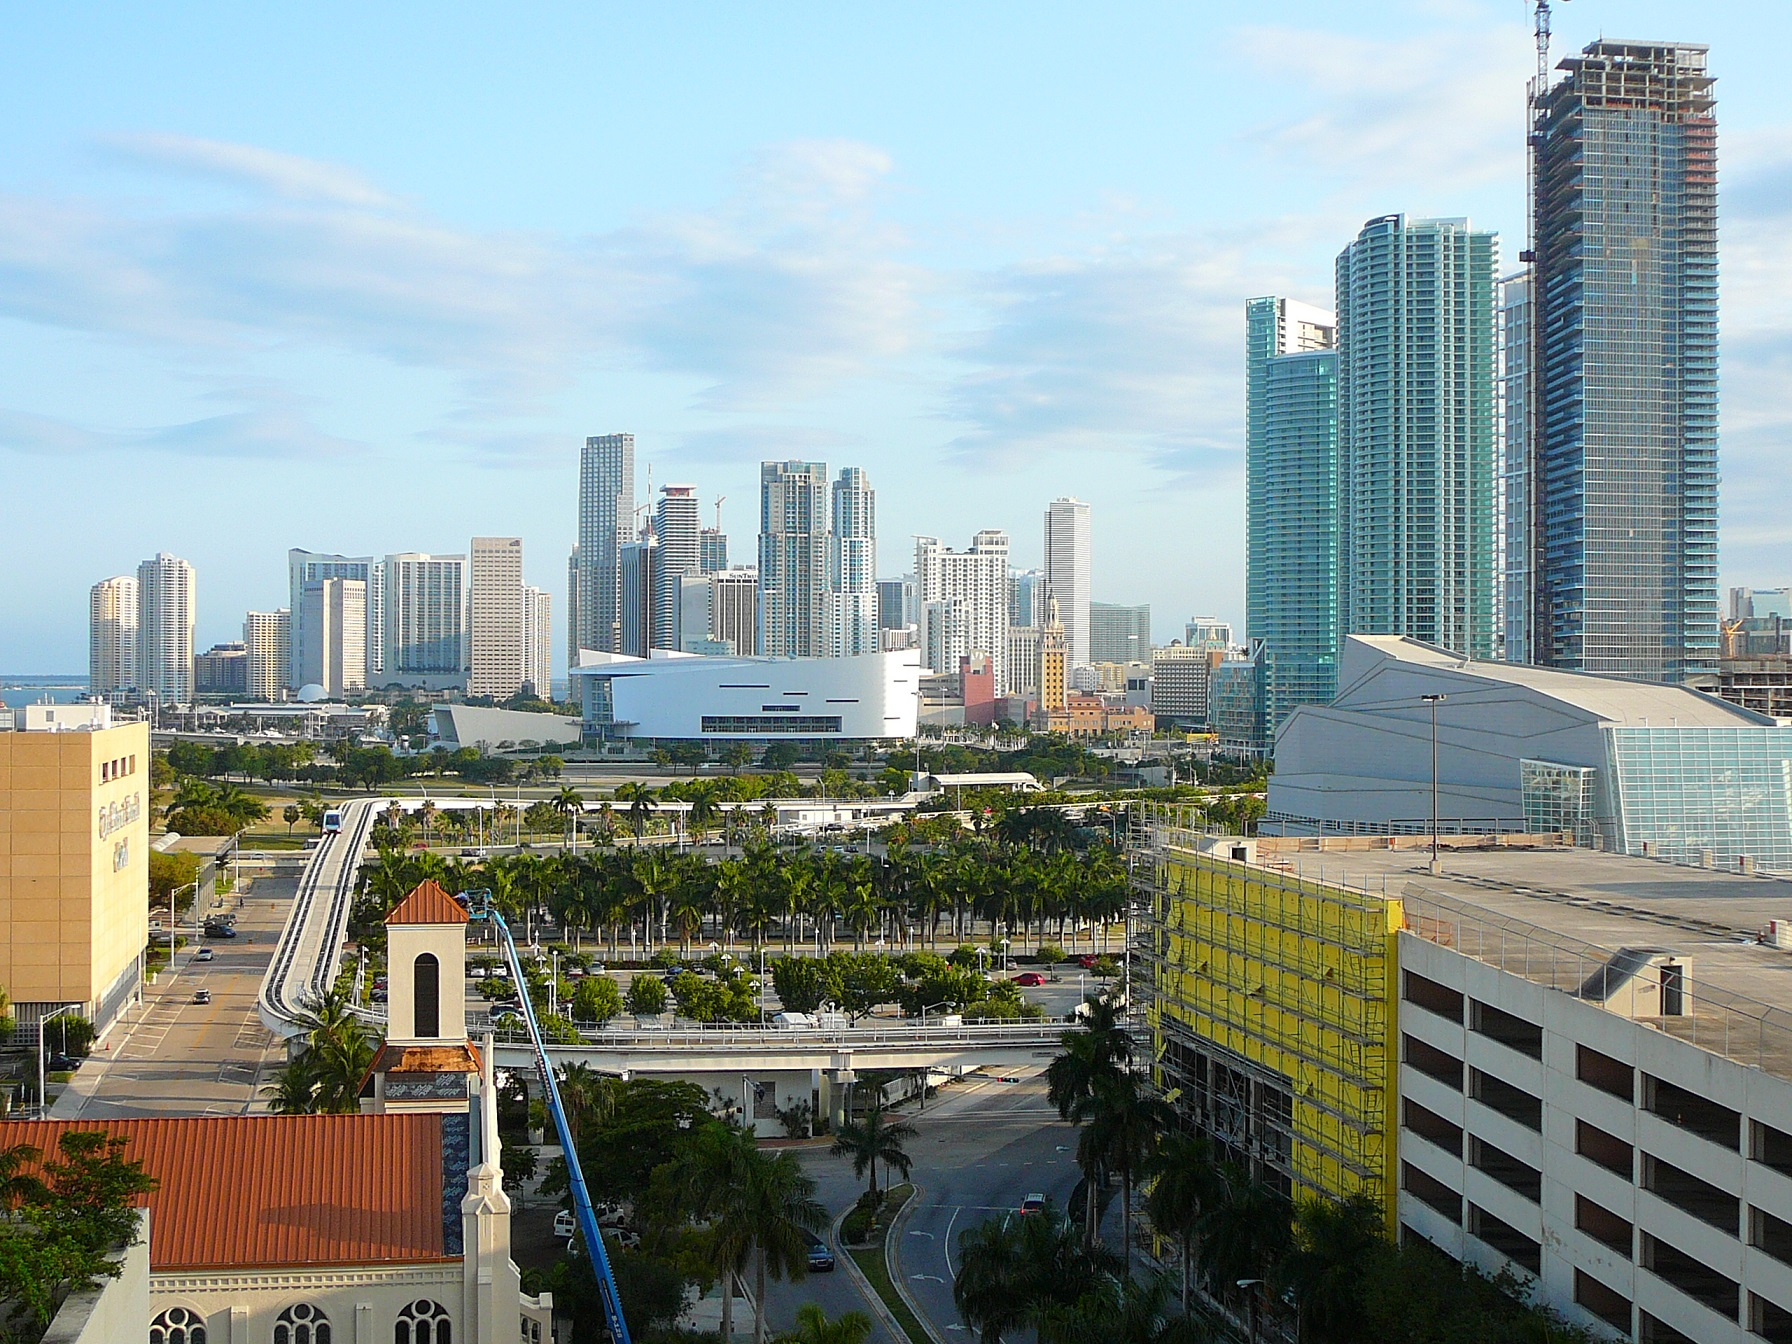 5 cities near Miami Where You're Most Likely to Find a Job